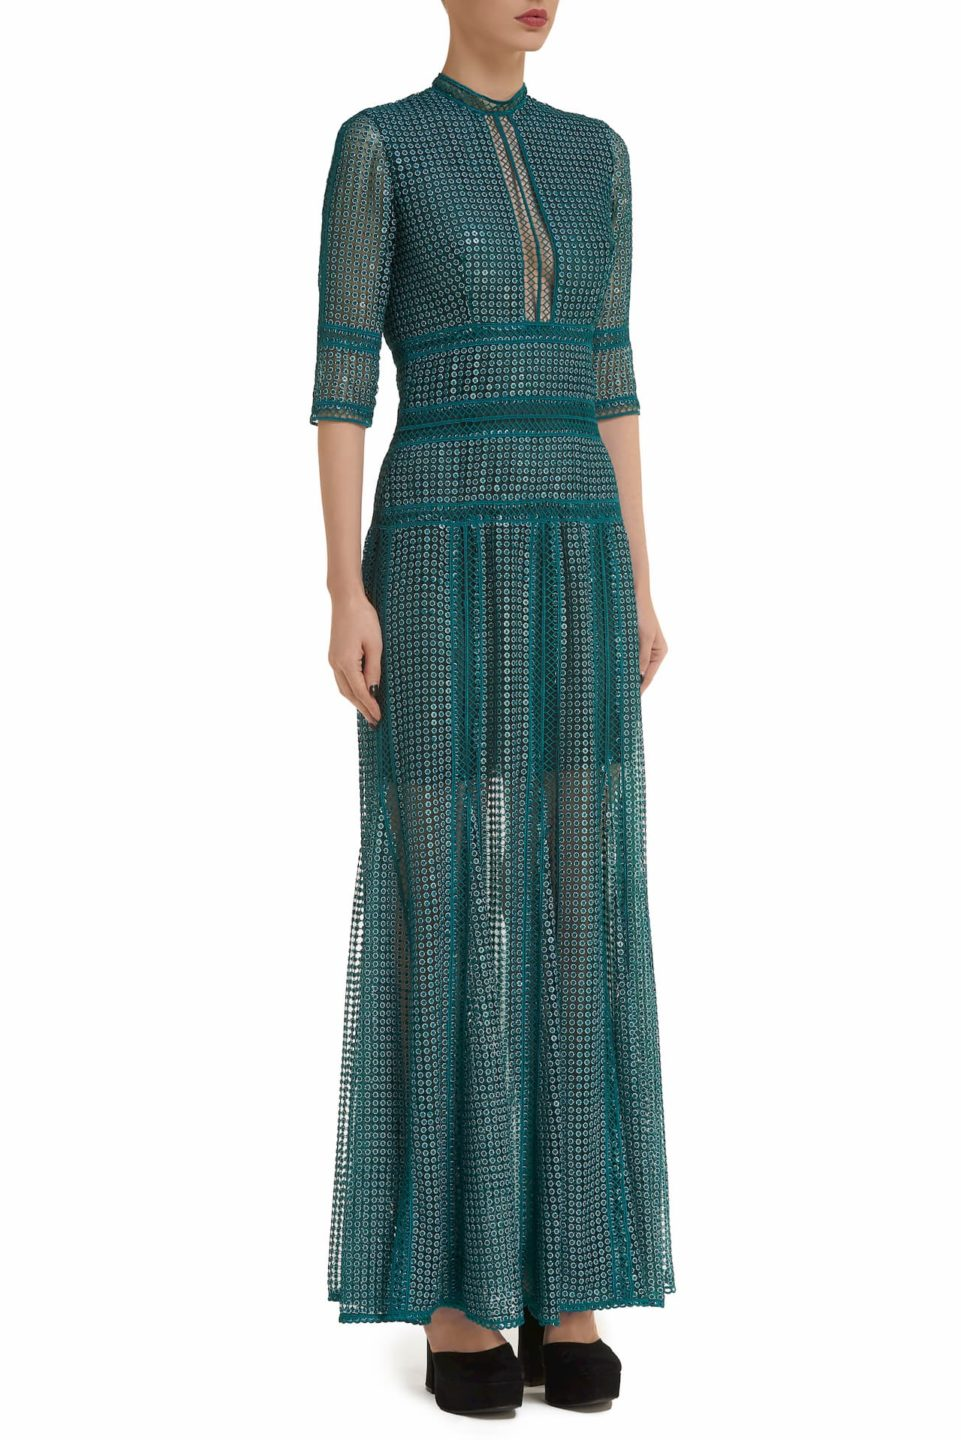 Trina PR2098 teal Embroidered Sequin Godet Dress with Three-Quarter Sleeves & Ladder Lace Trim